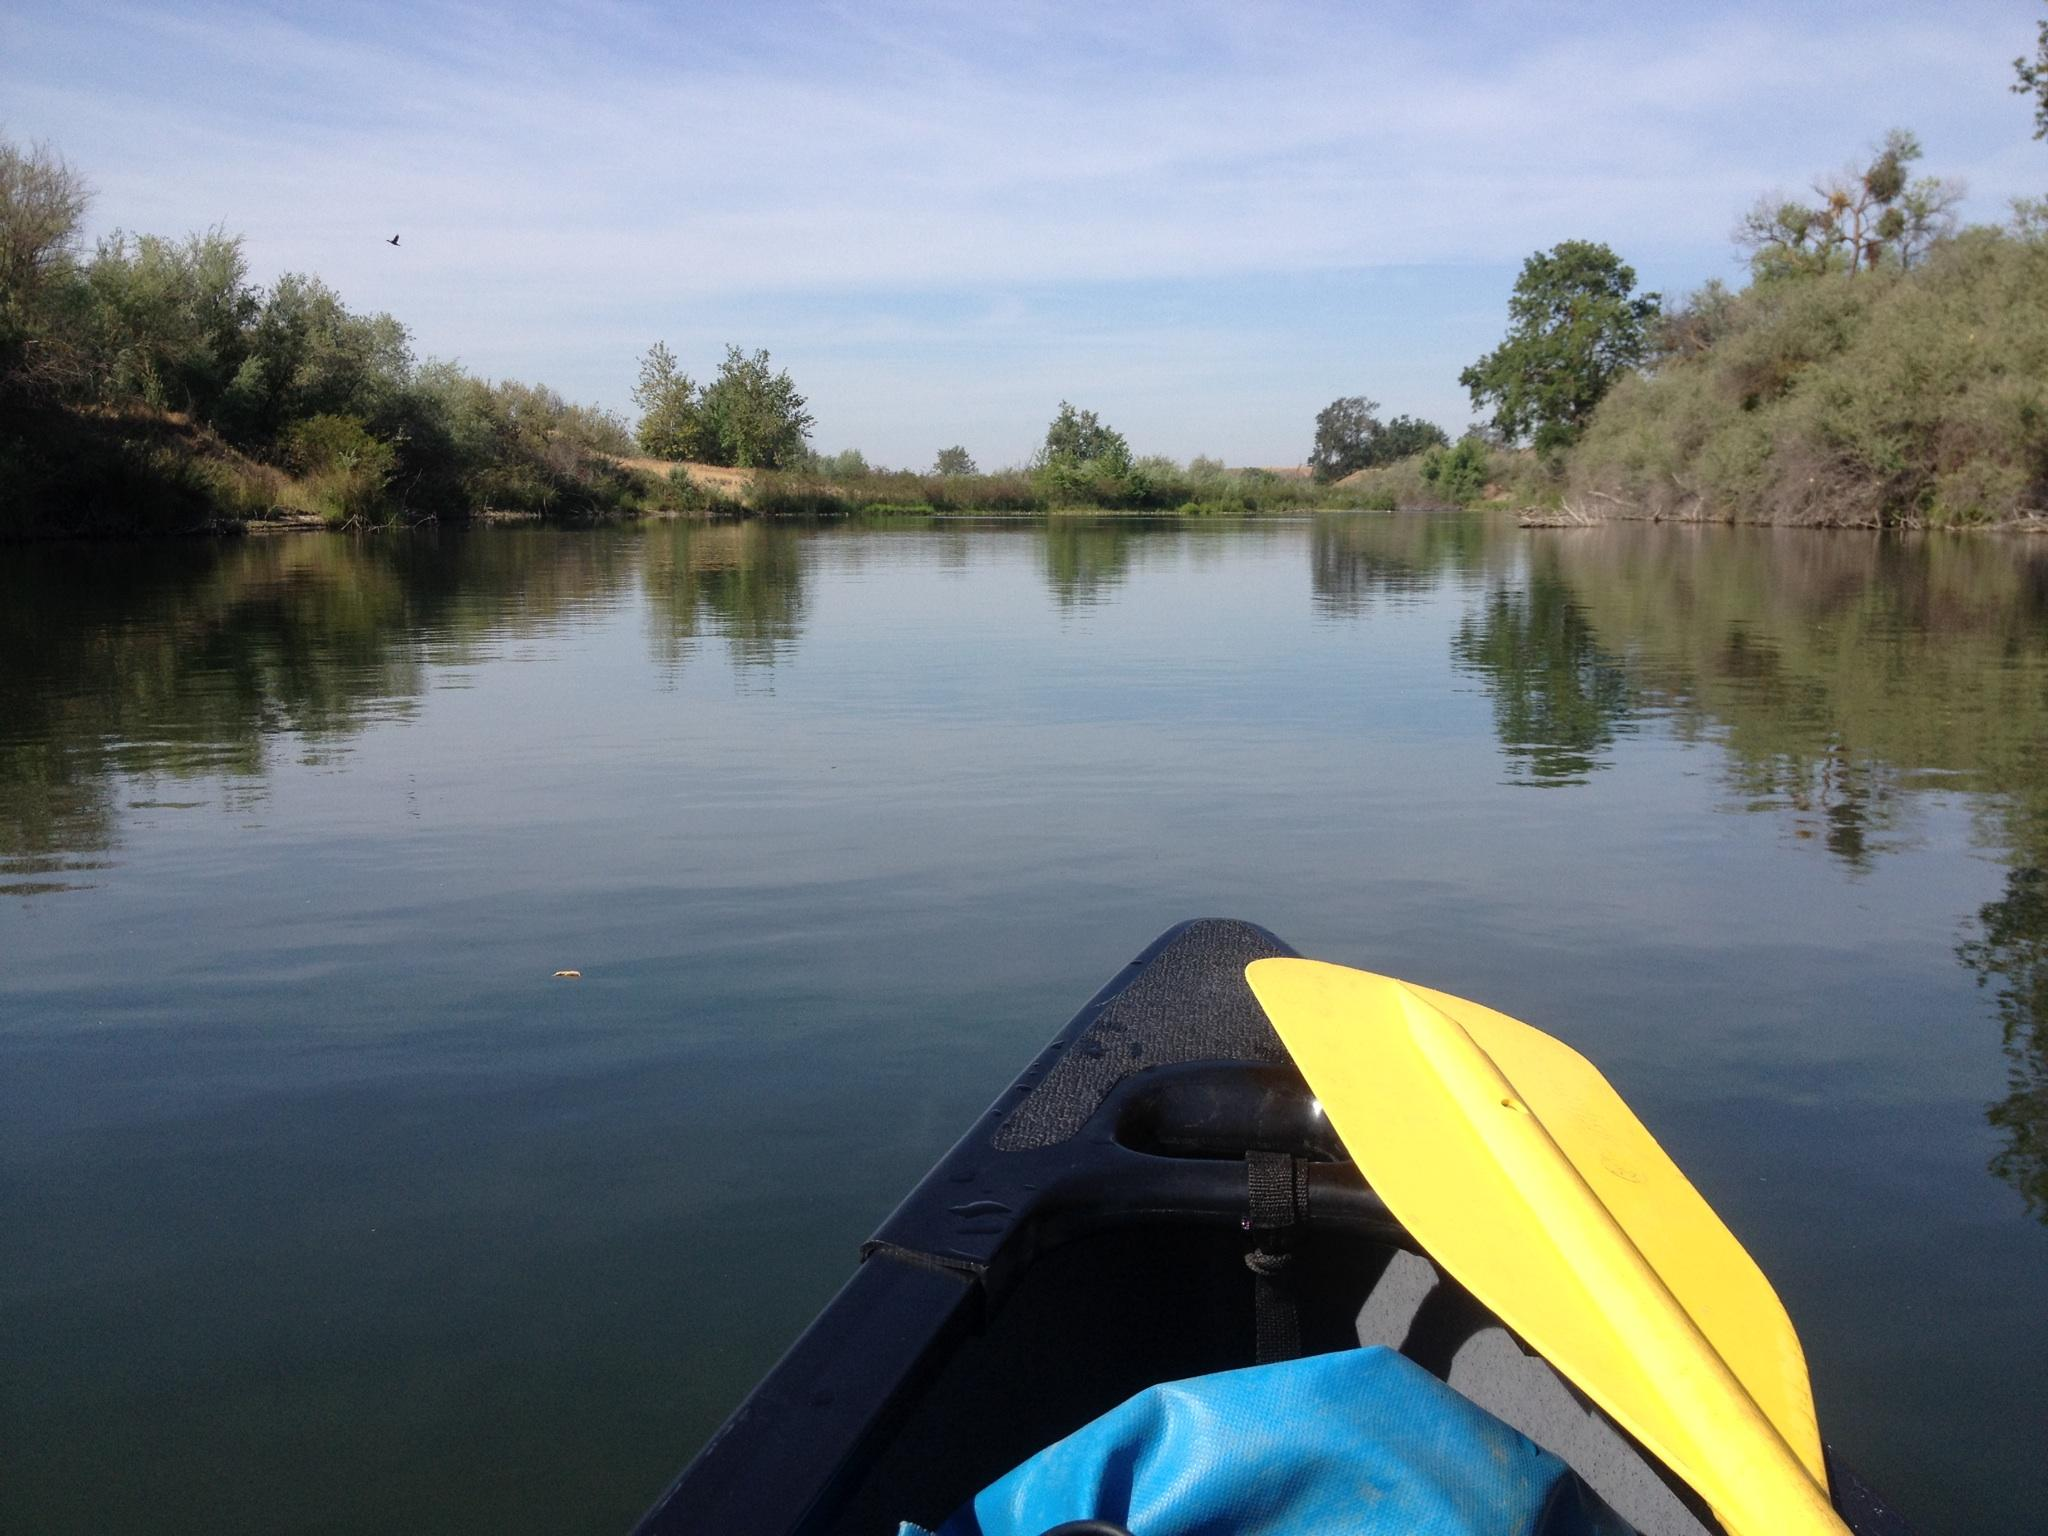 When River West opens it will be an amenity for kayakers and canoers alike.